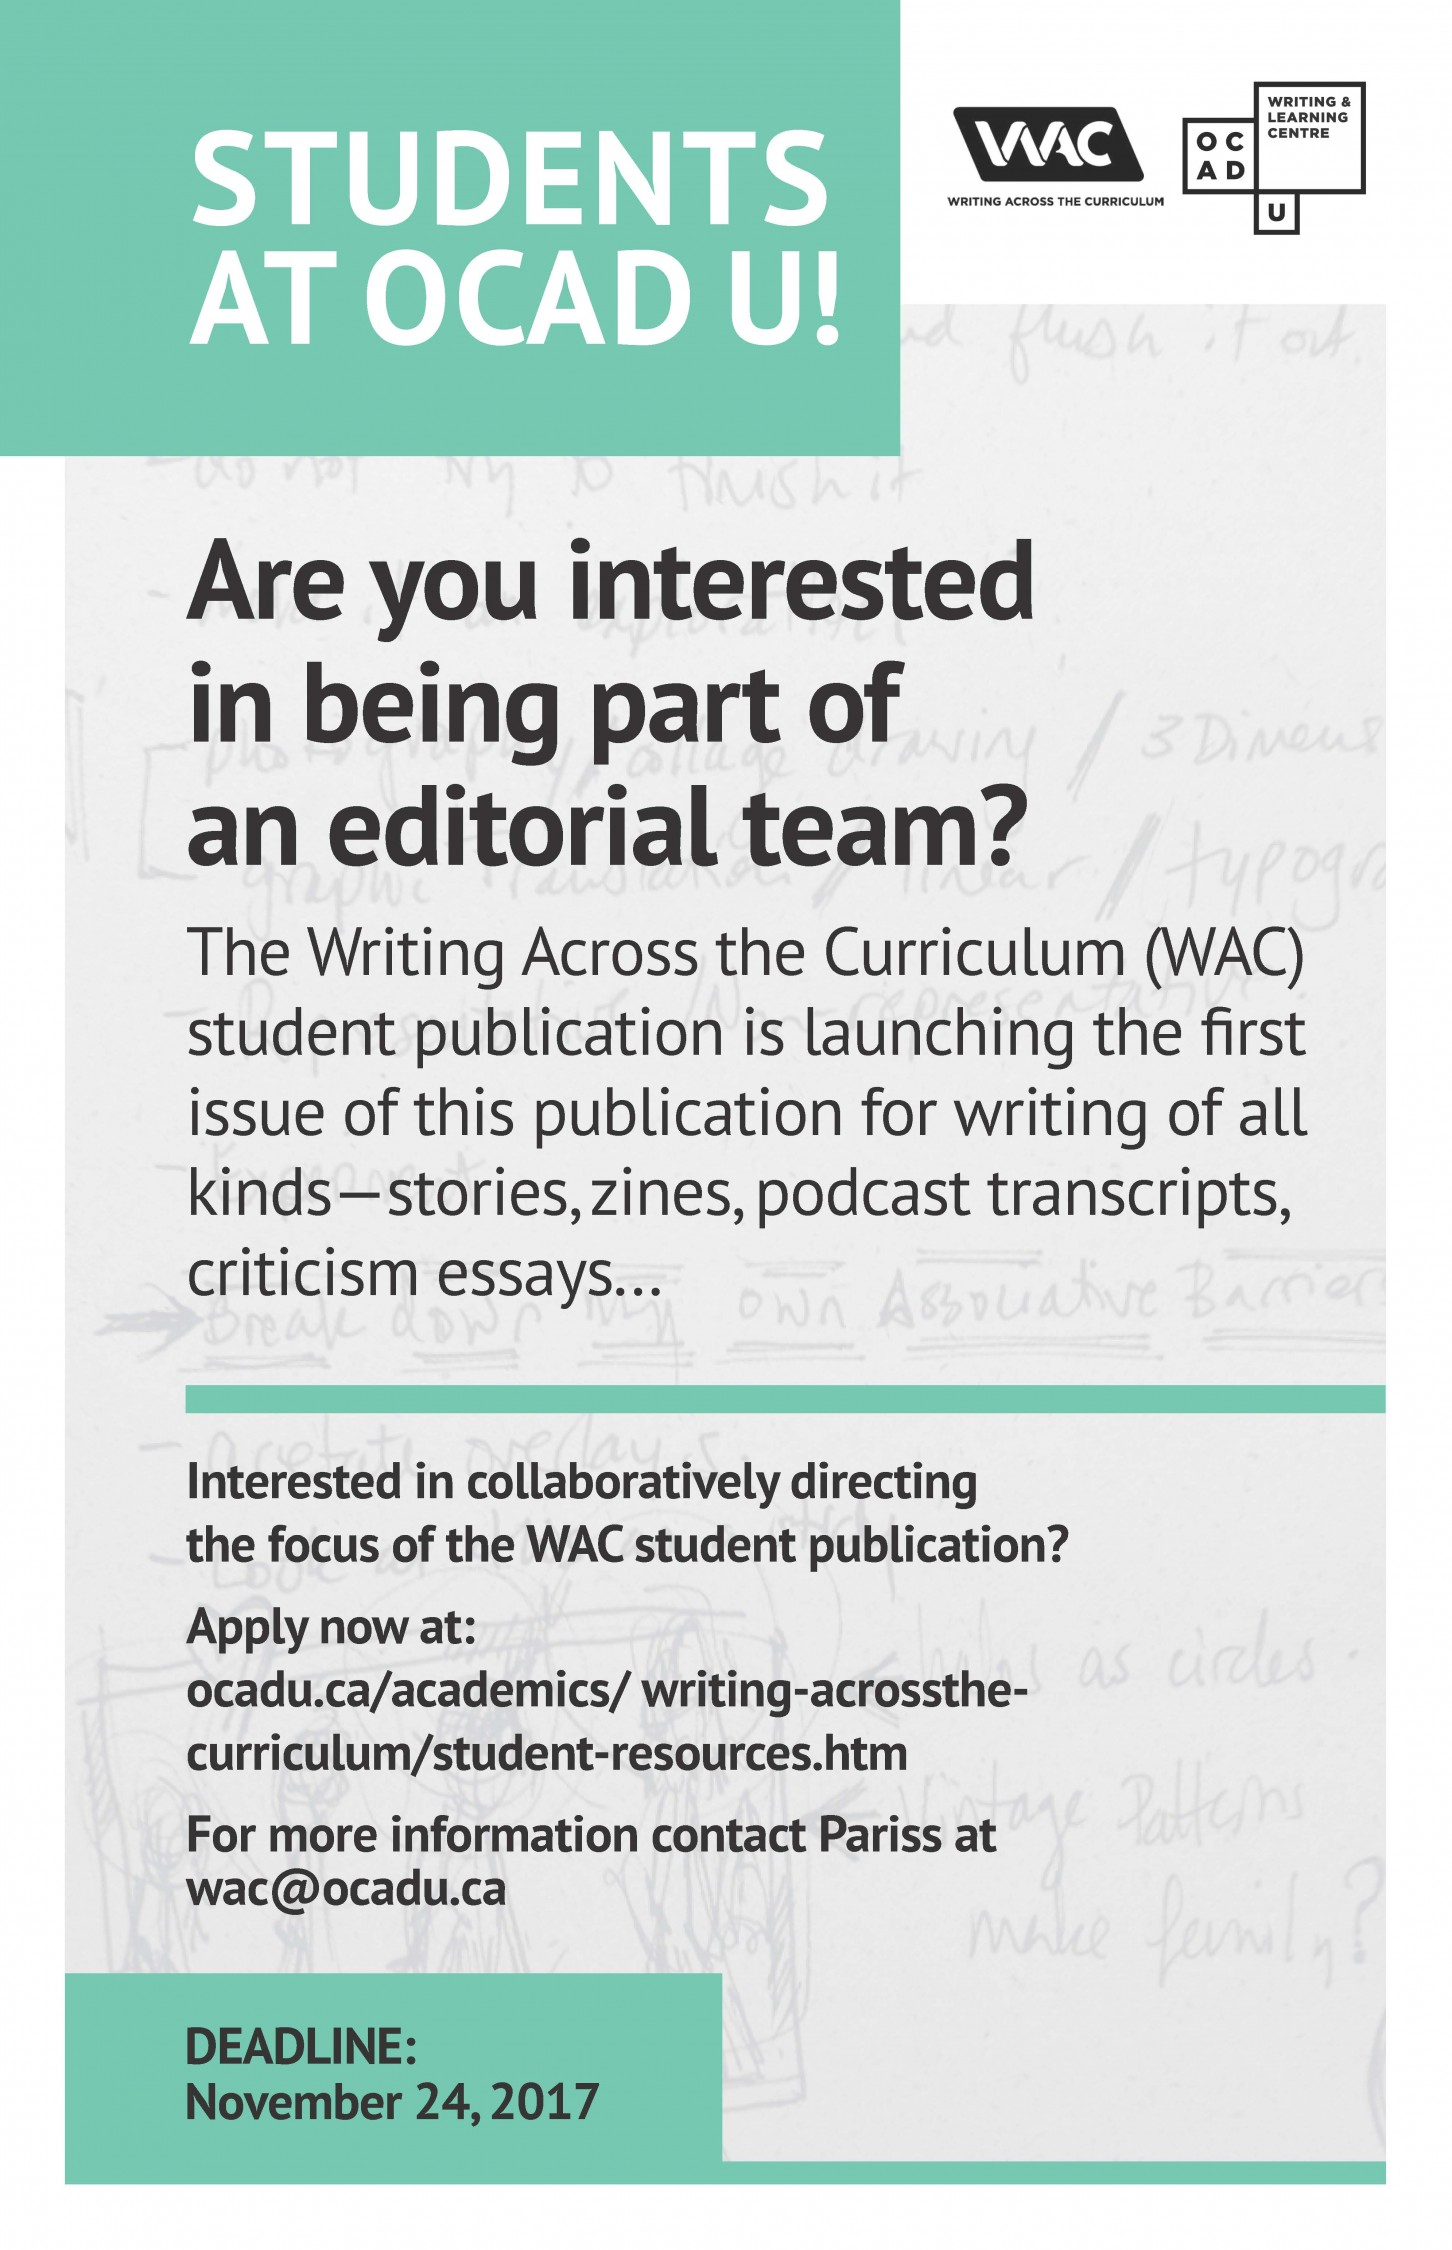 Would you like to be part of the Writing Across the Curriculum student publication editorial team?